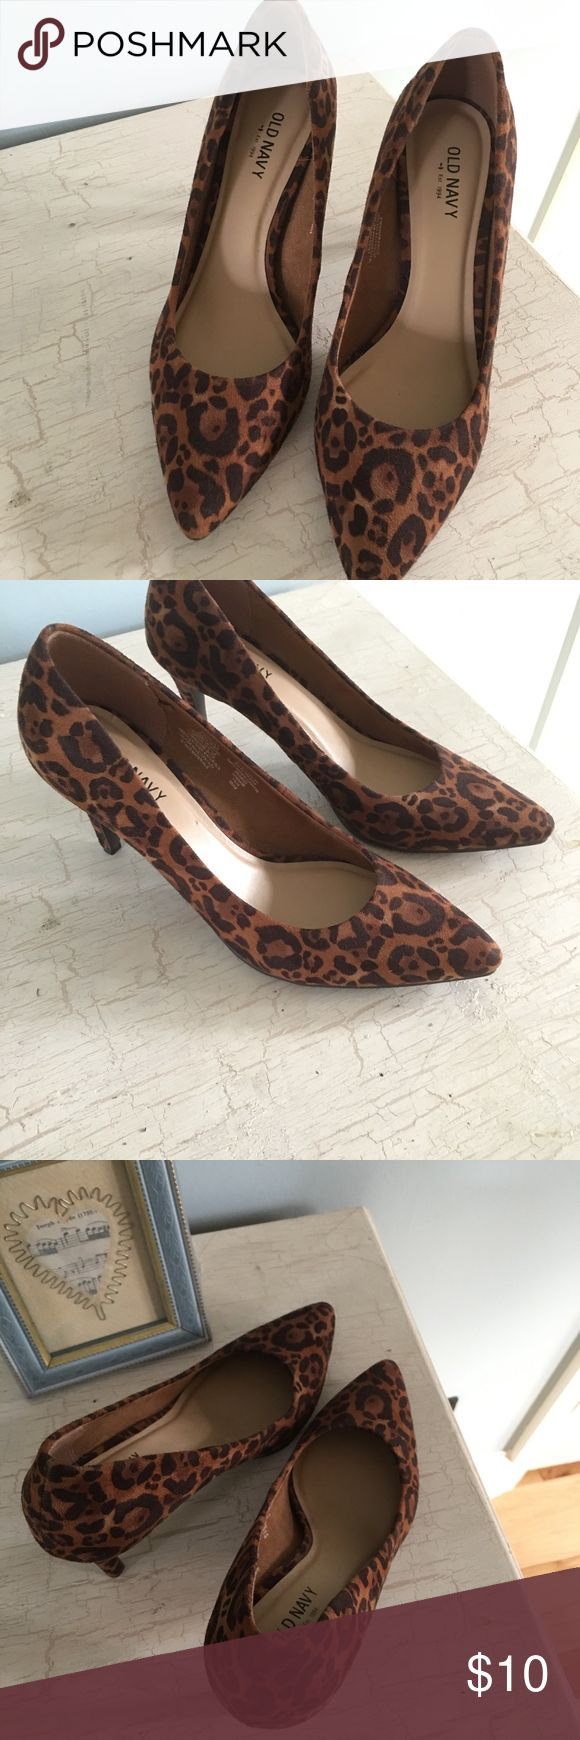 """Ladies Shoes Size 6 Old Navy Leopard skin print, Never worn, size 6 3"""" heels. Old Navy Shoes Heels"""